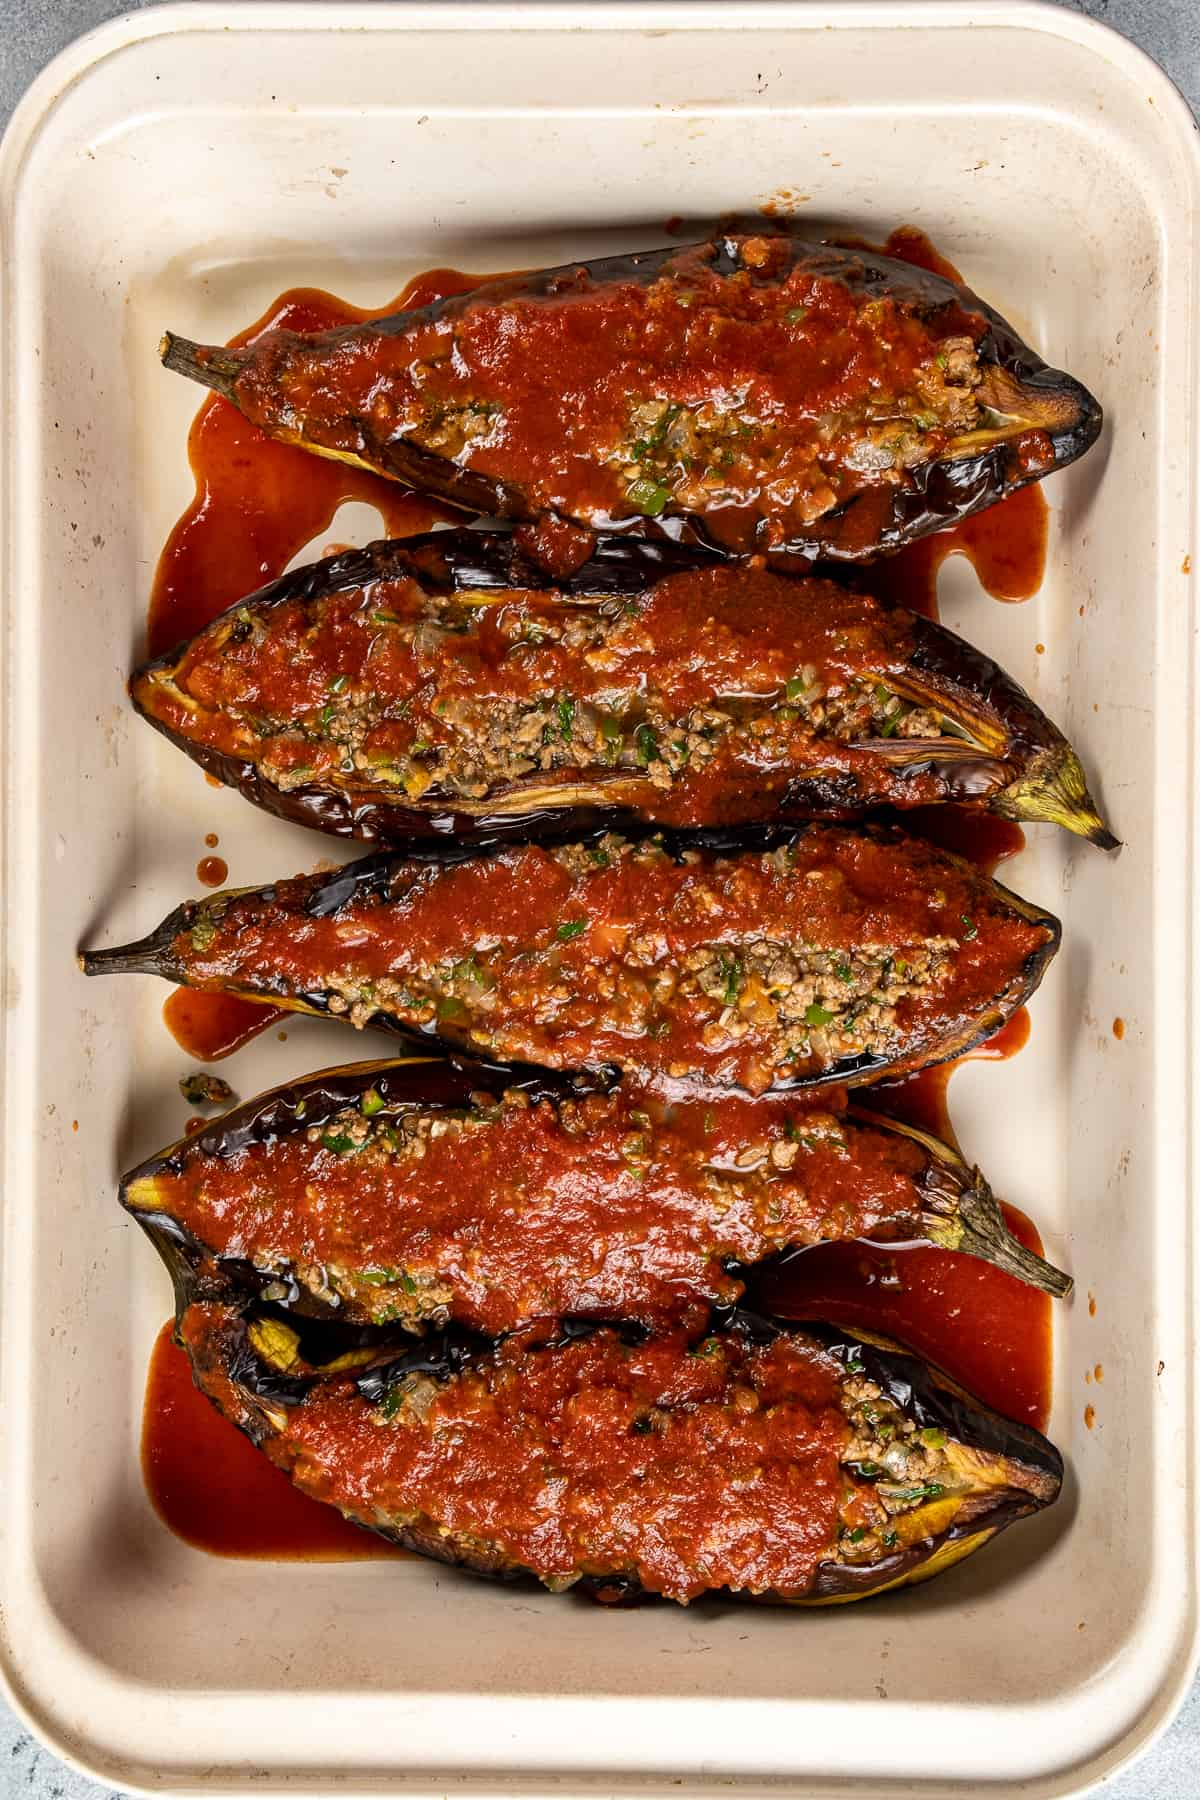 Stuffed roasted eggplants covered with tomato sauce in a baking pan.